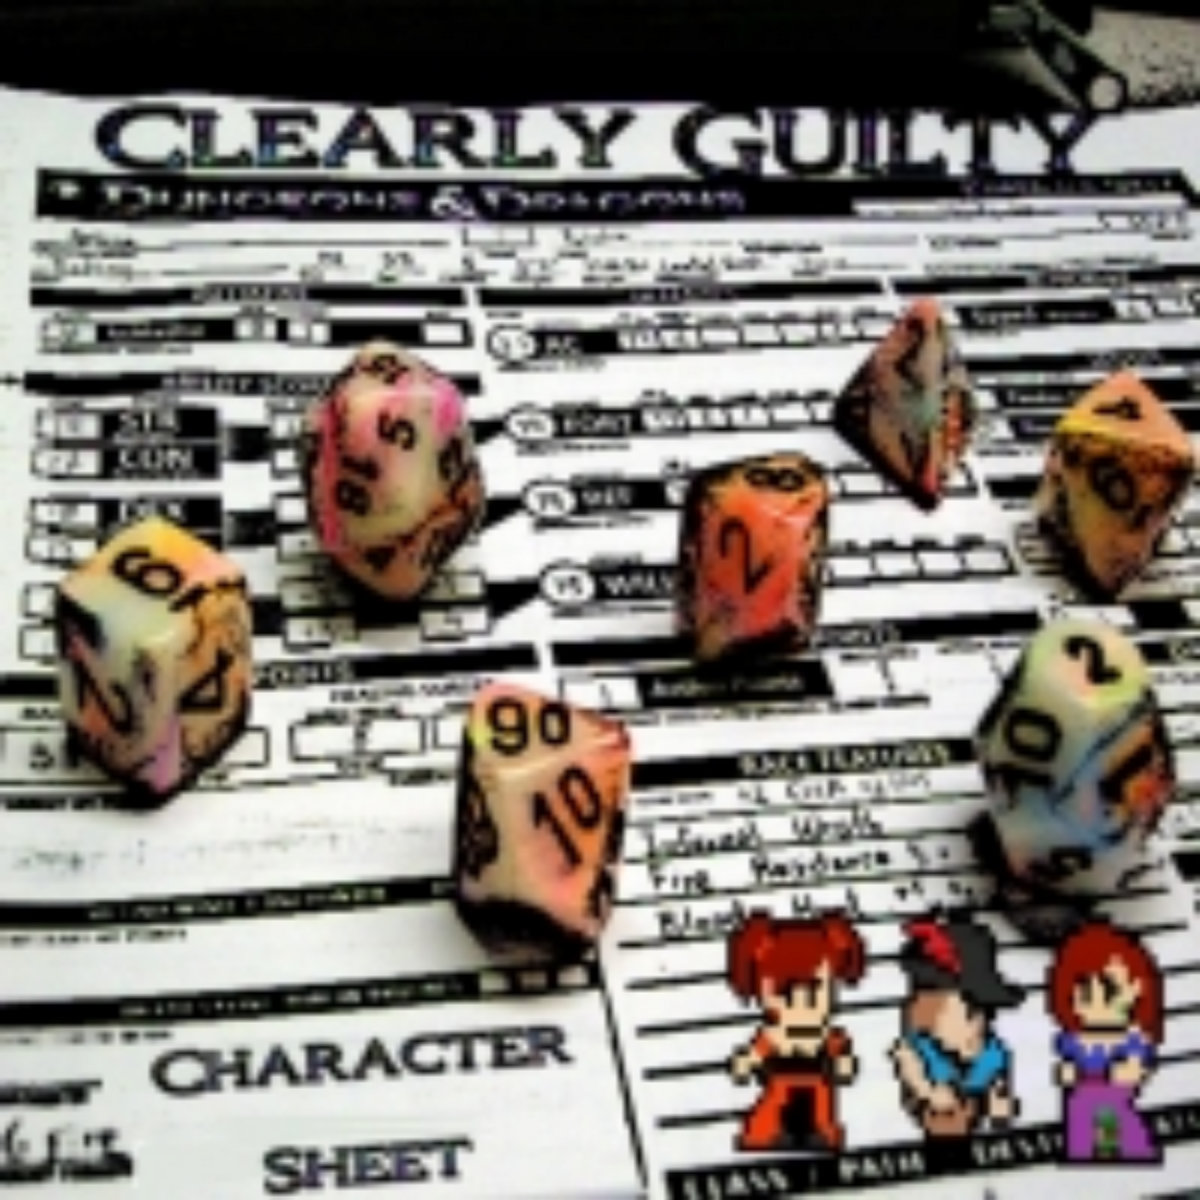 Character Sheet | Clearly Guilty